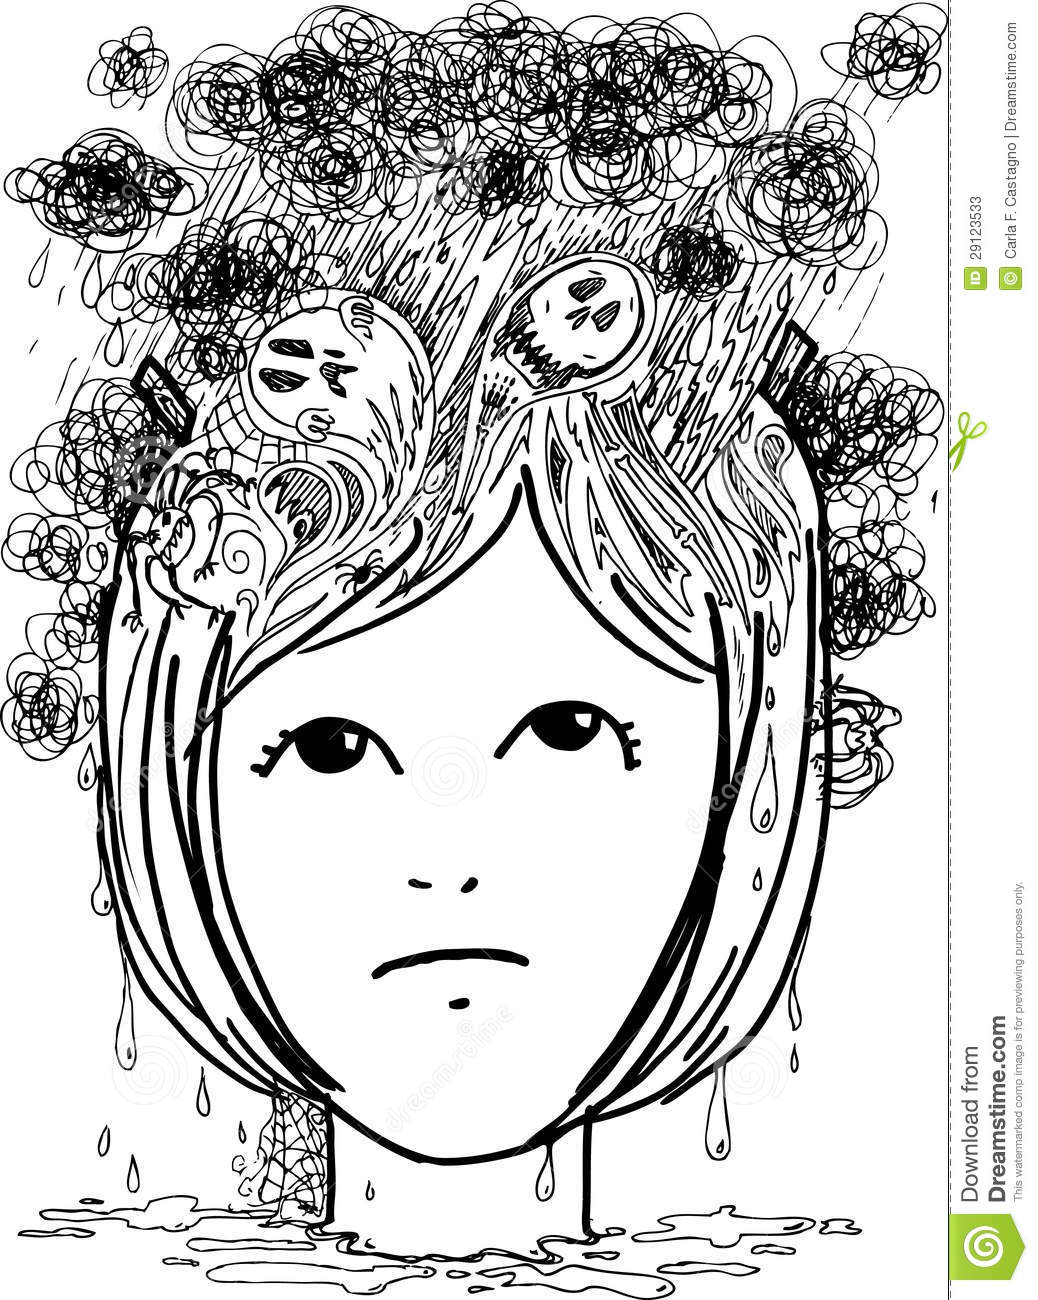 Sketch Doodles Stress And Depression Vector Stock Photos